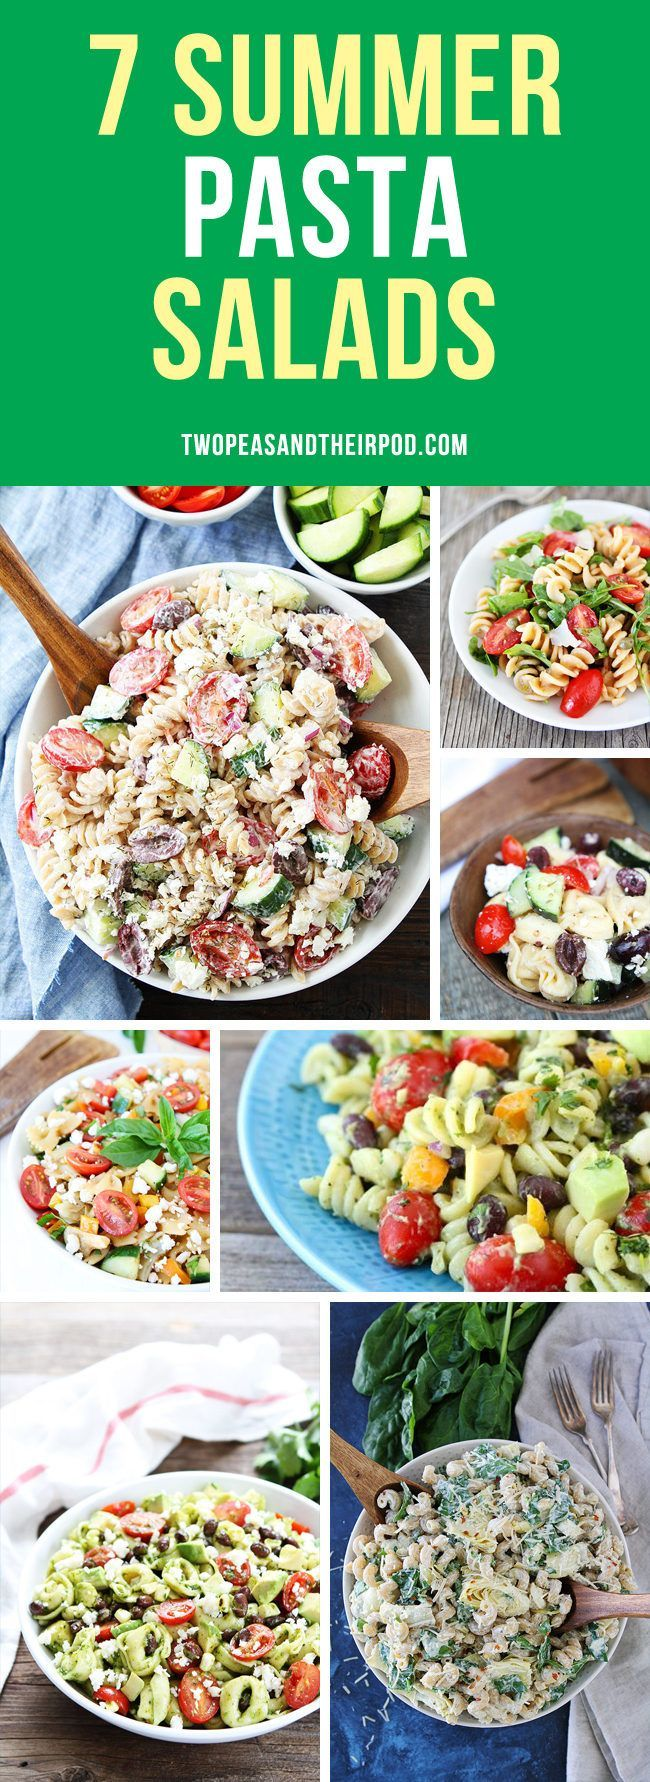 7 Summer Pasta Salad Recipes that are perfect side dishes for barbecues, picnics, and potlucks! You will want to make all of these easy pasta salad recipes this summer!